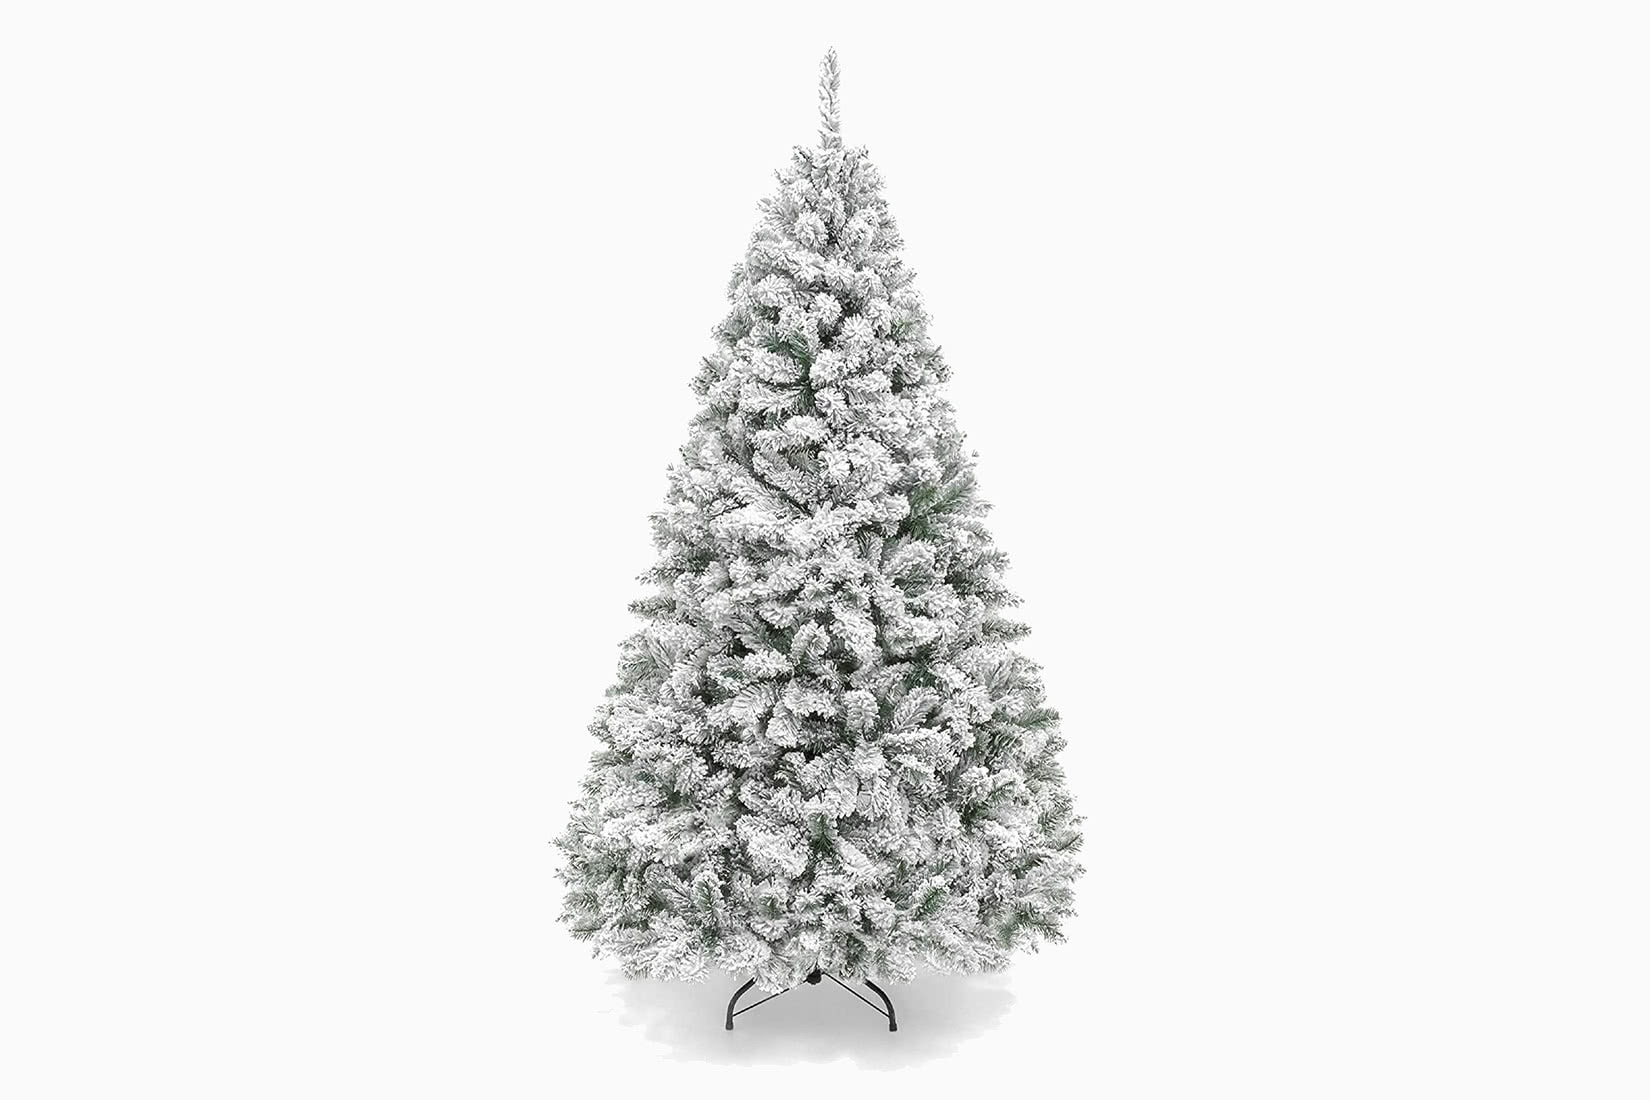 best artificial Christmas tree snow choice review - Luxe Digital